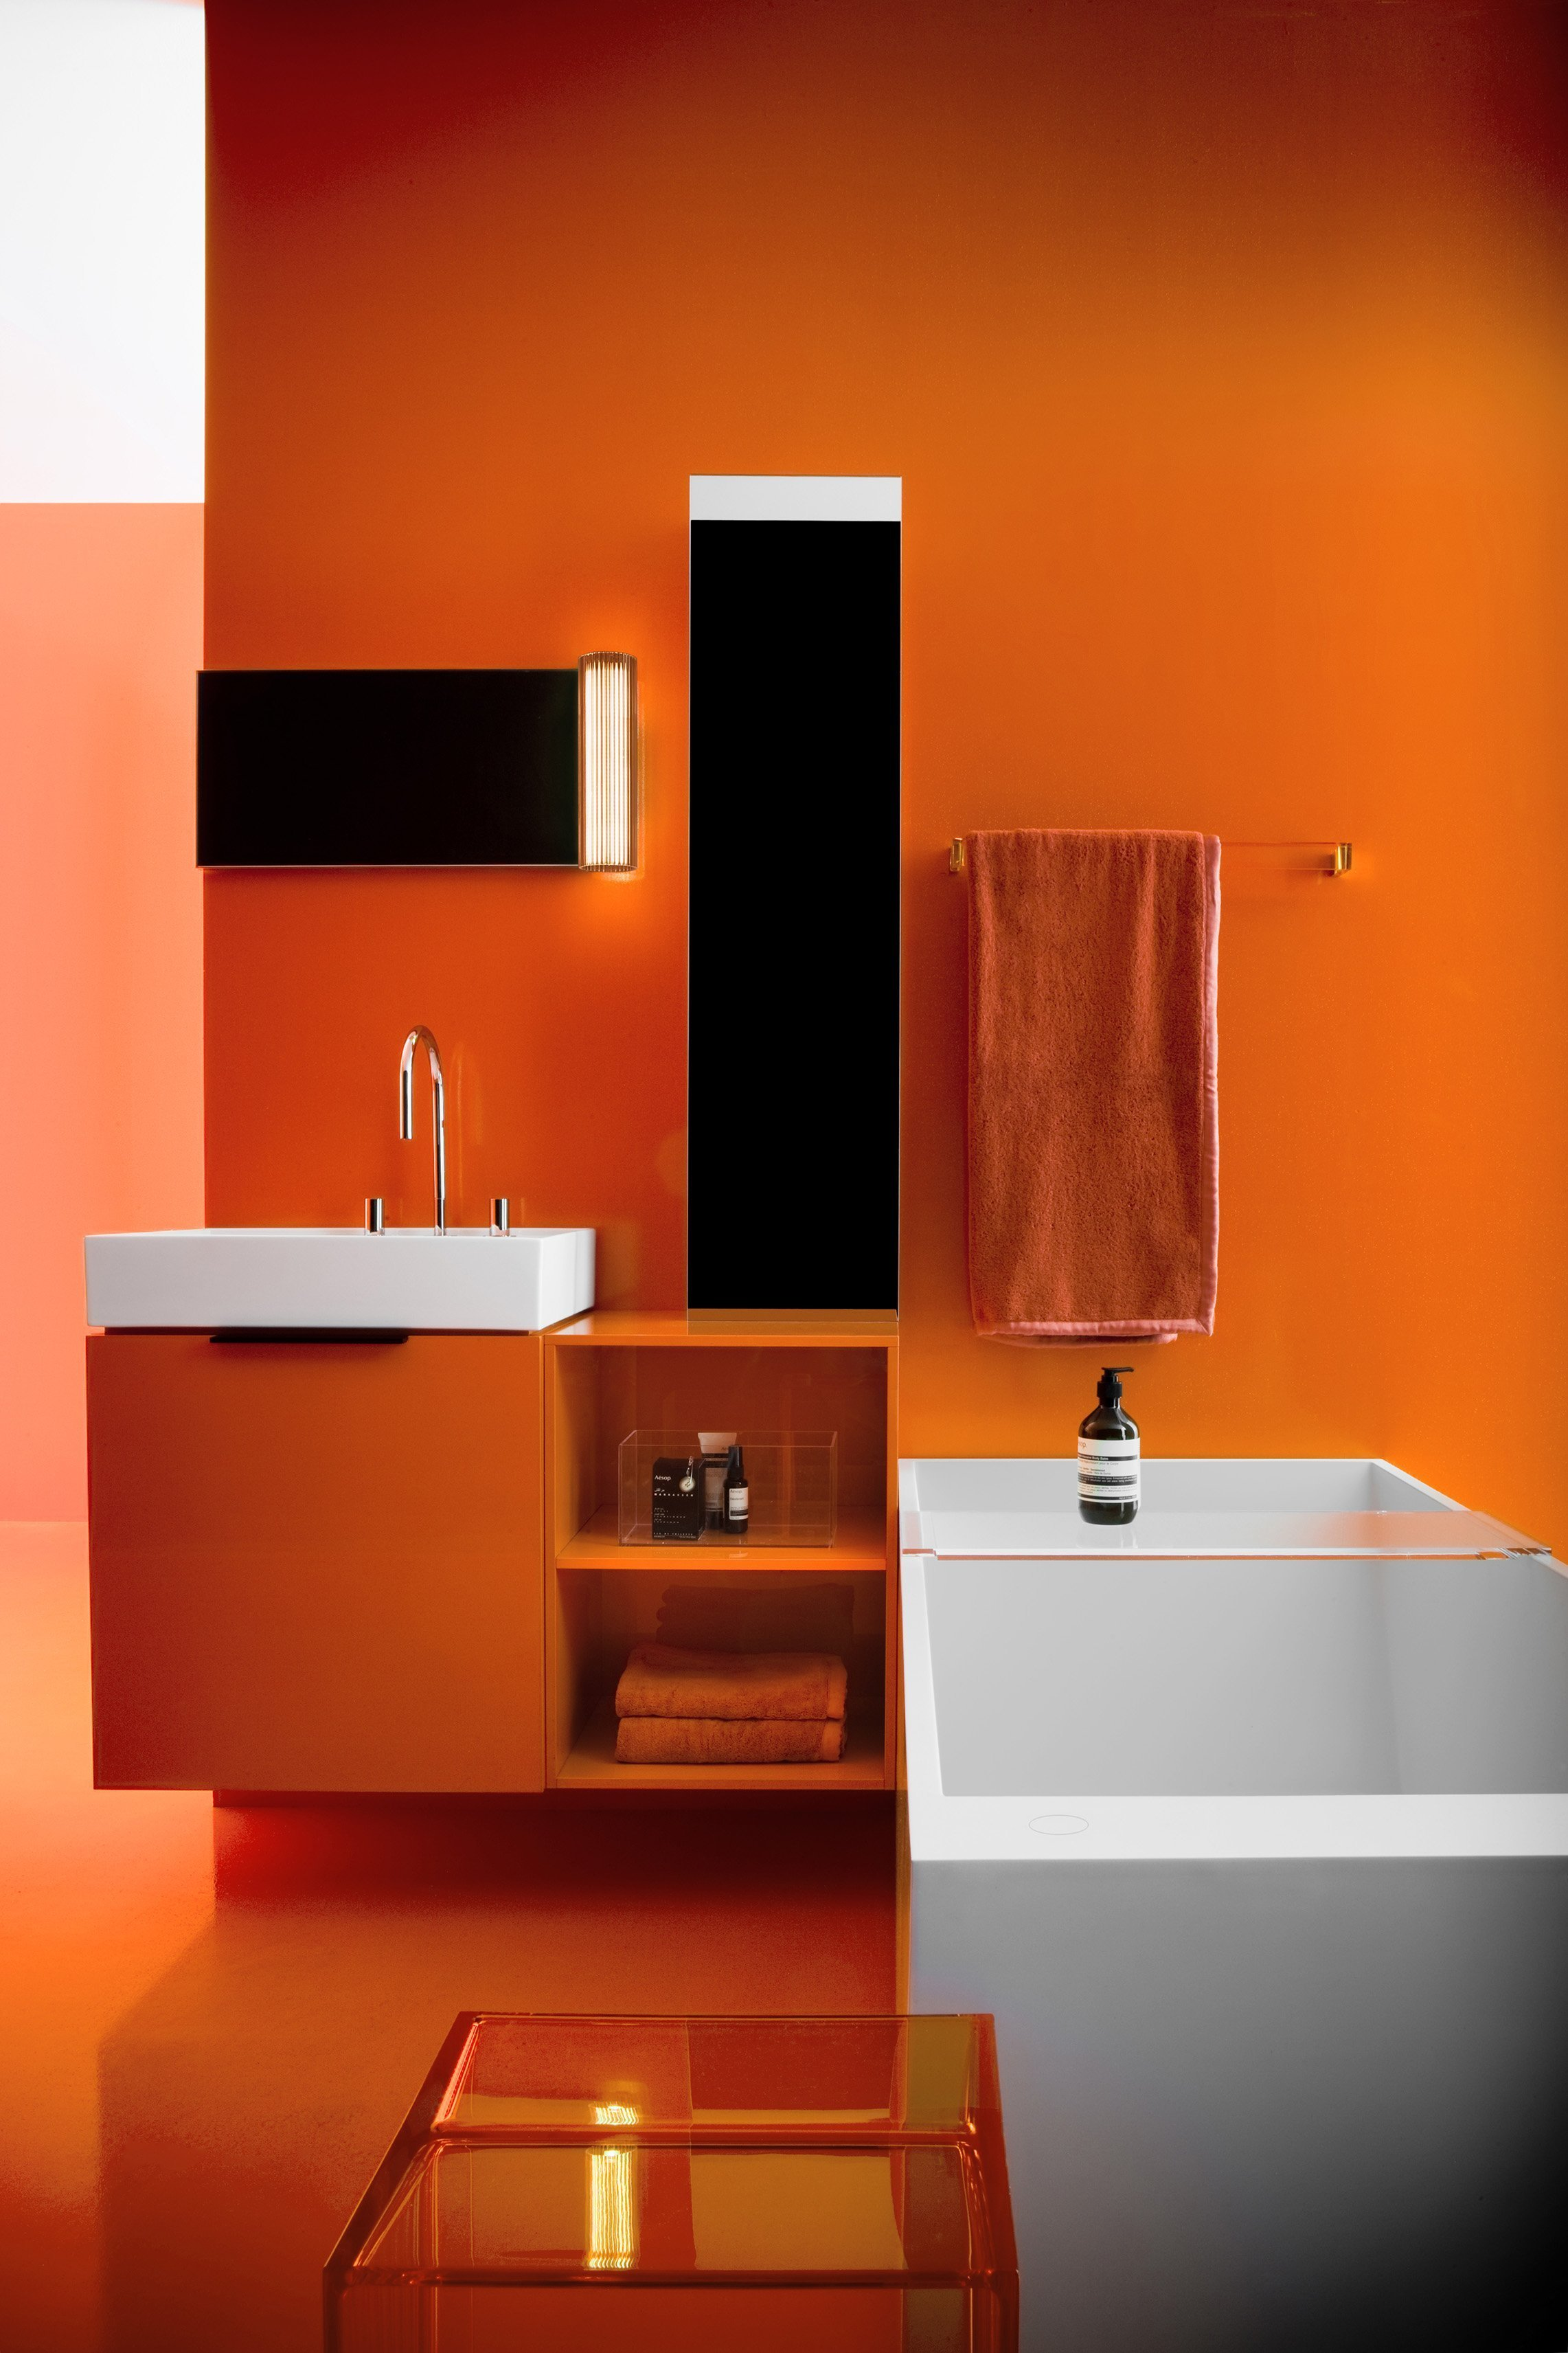 The bathroom Kartell by Laufen, designed by Ludovica + Roberto Palomba, is here